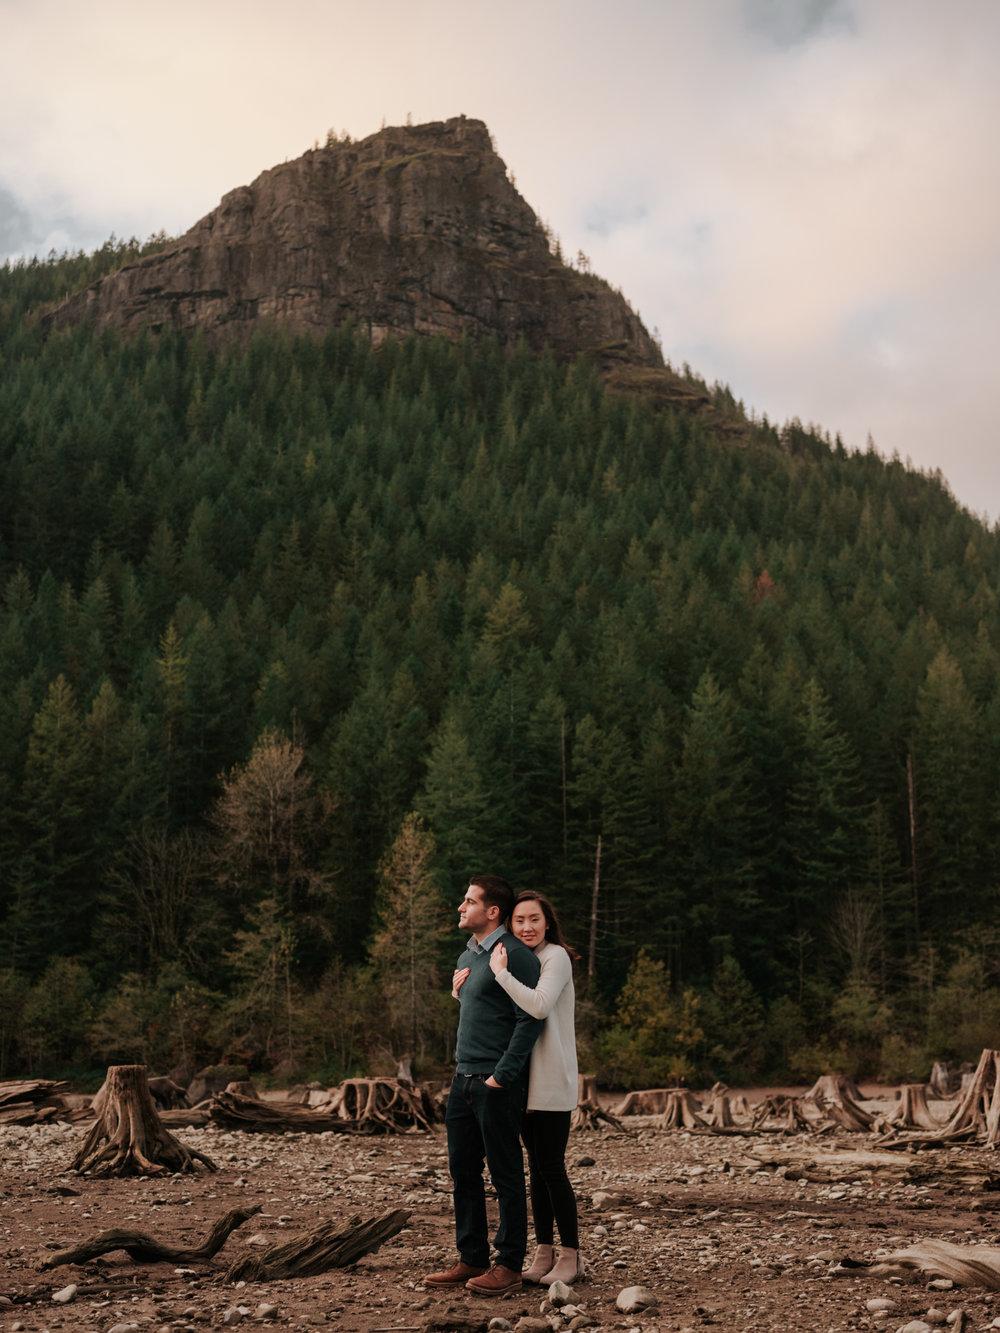 Seattle Engagement Photographer_Stolen Glimpses 54.jpg